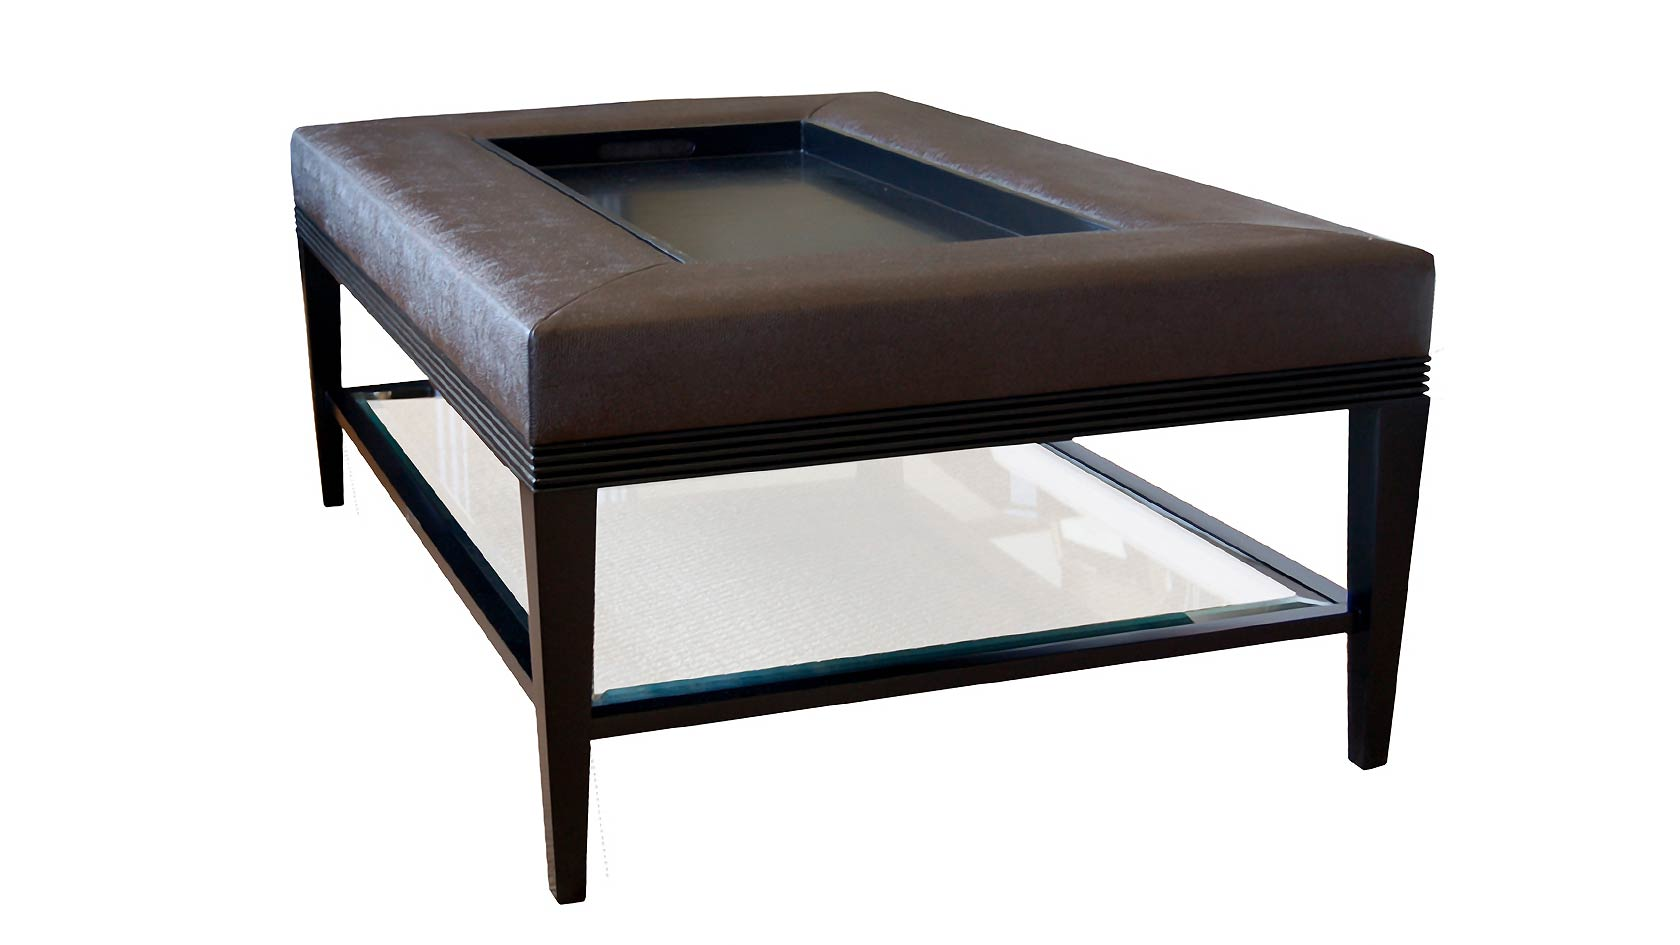 Dual Purpose Coffee Tables Plush Home Carlisle Coffee Table Ottoman